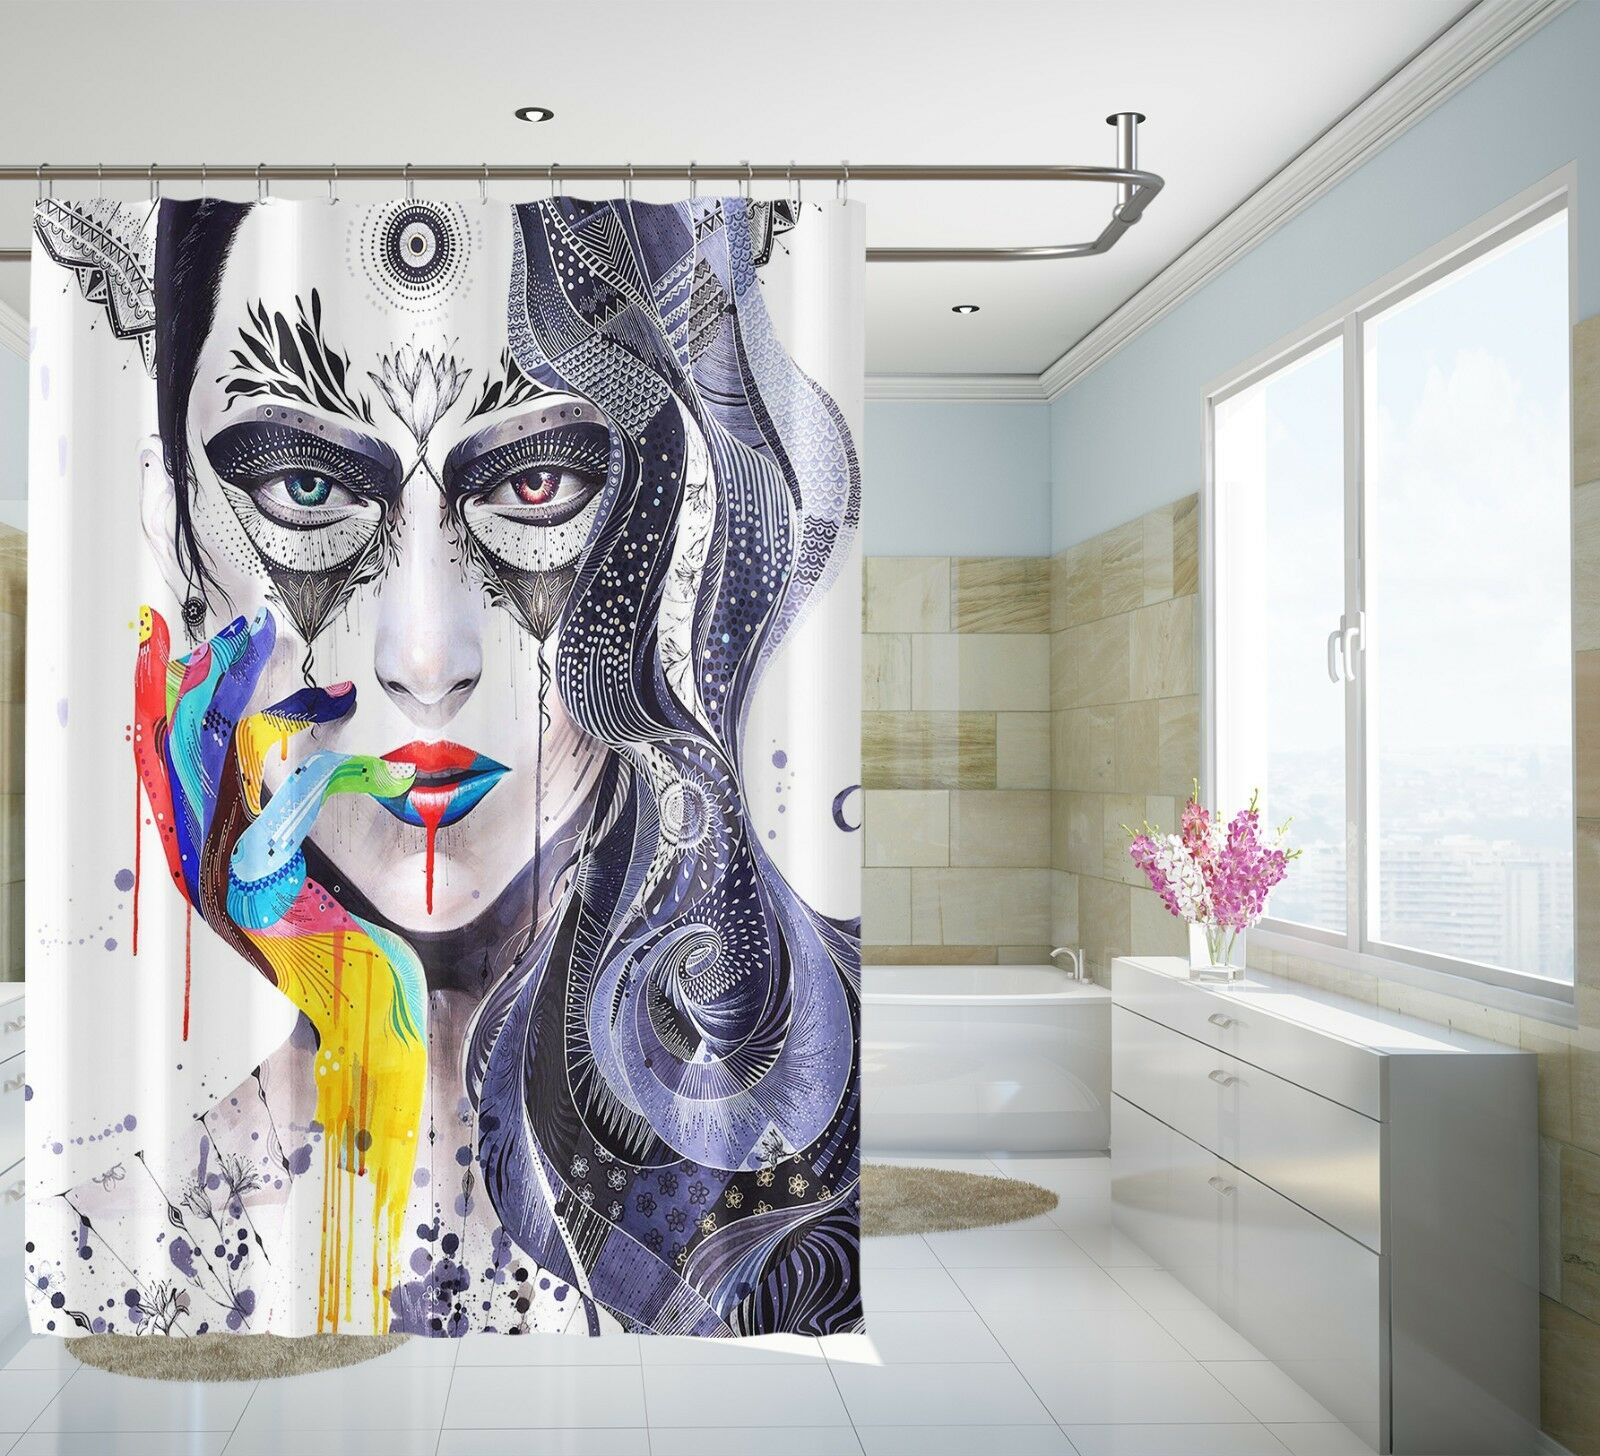 3D Graffiti Fille 27 Rideau de Douche Imperméable Fibre Salle de Bain Home Windows Toilette